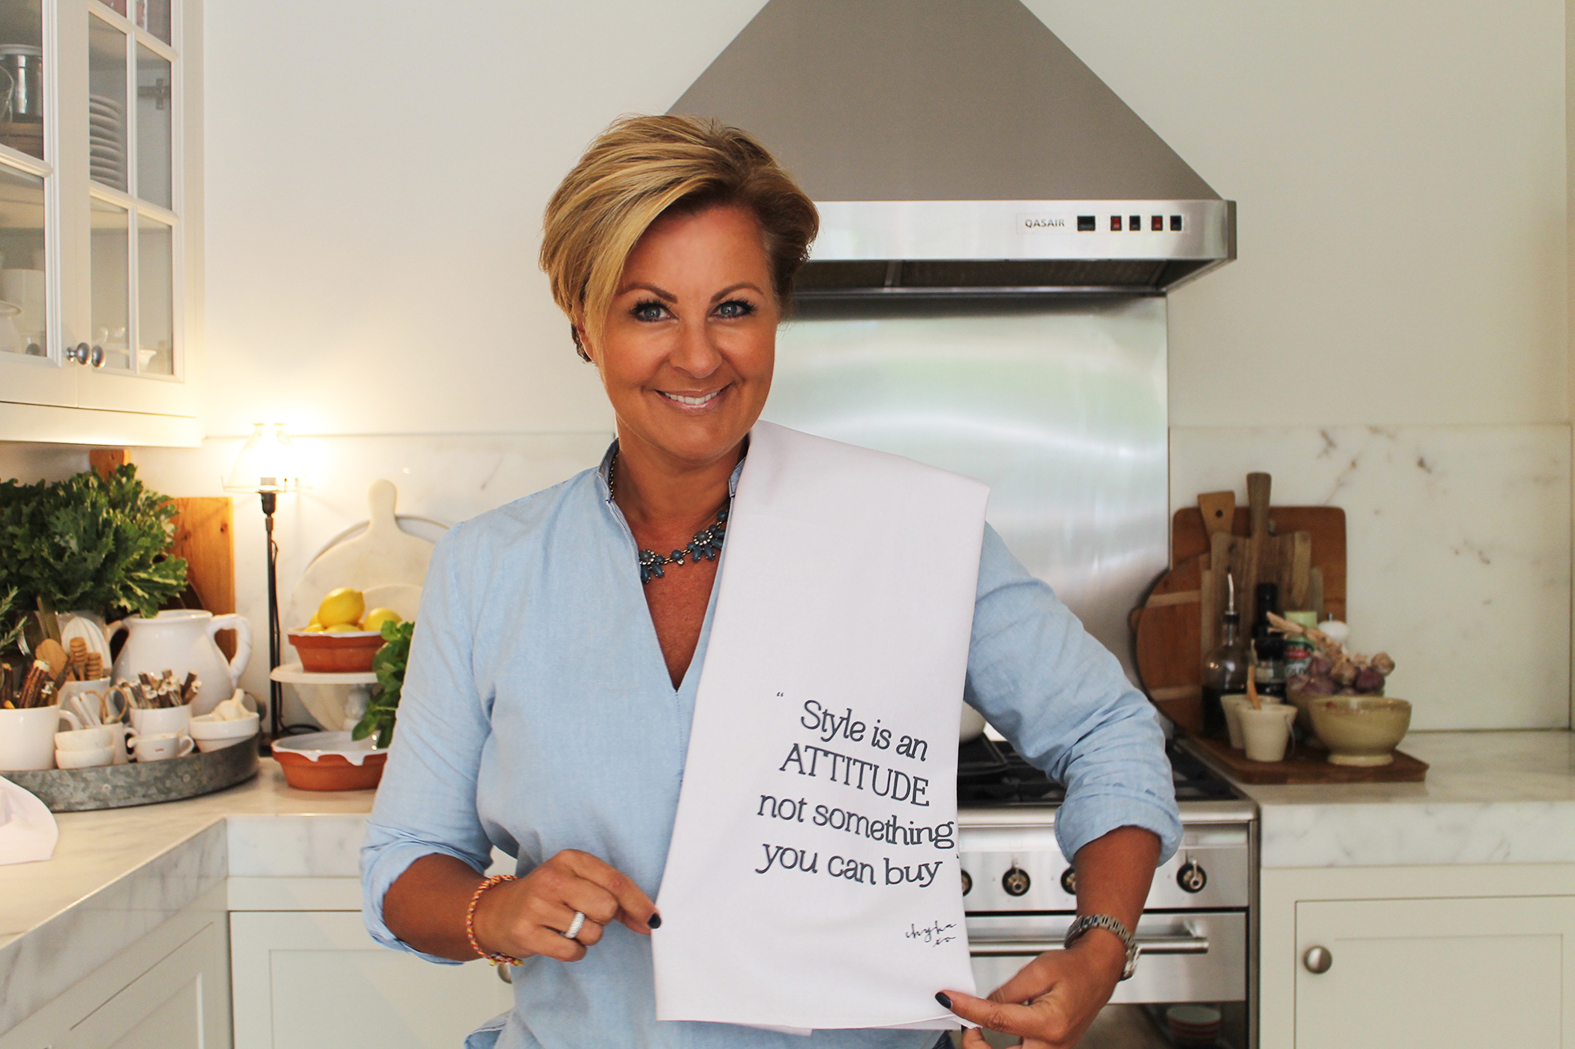 'Style is Attitude' Tea towels by Chyka.